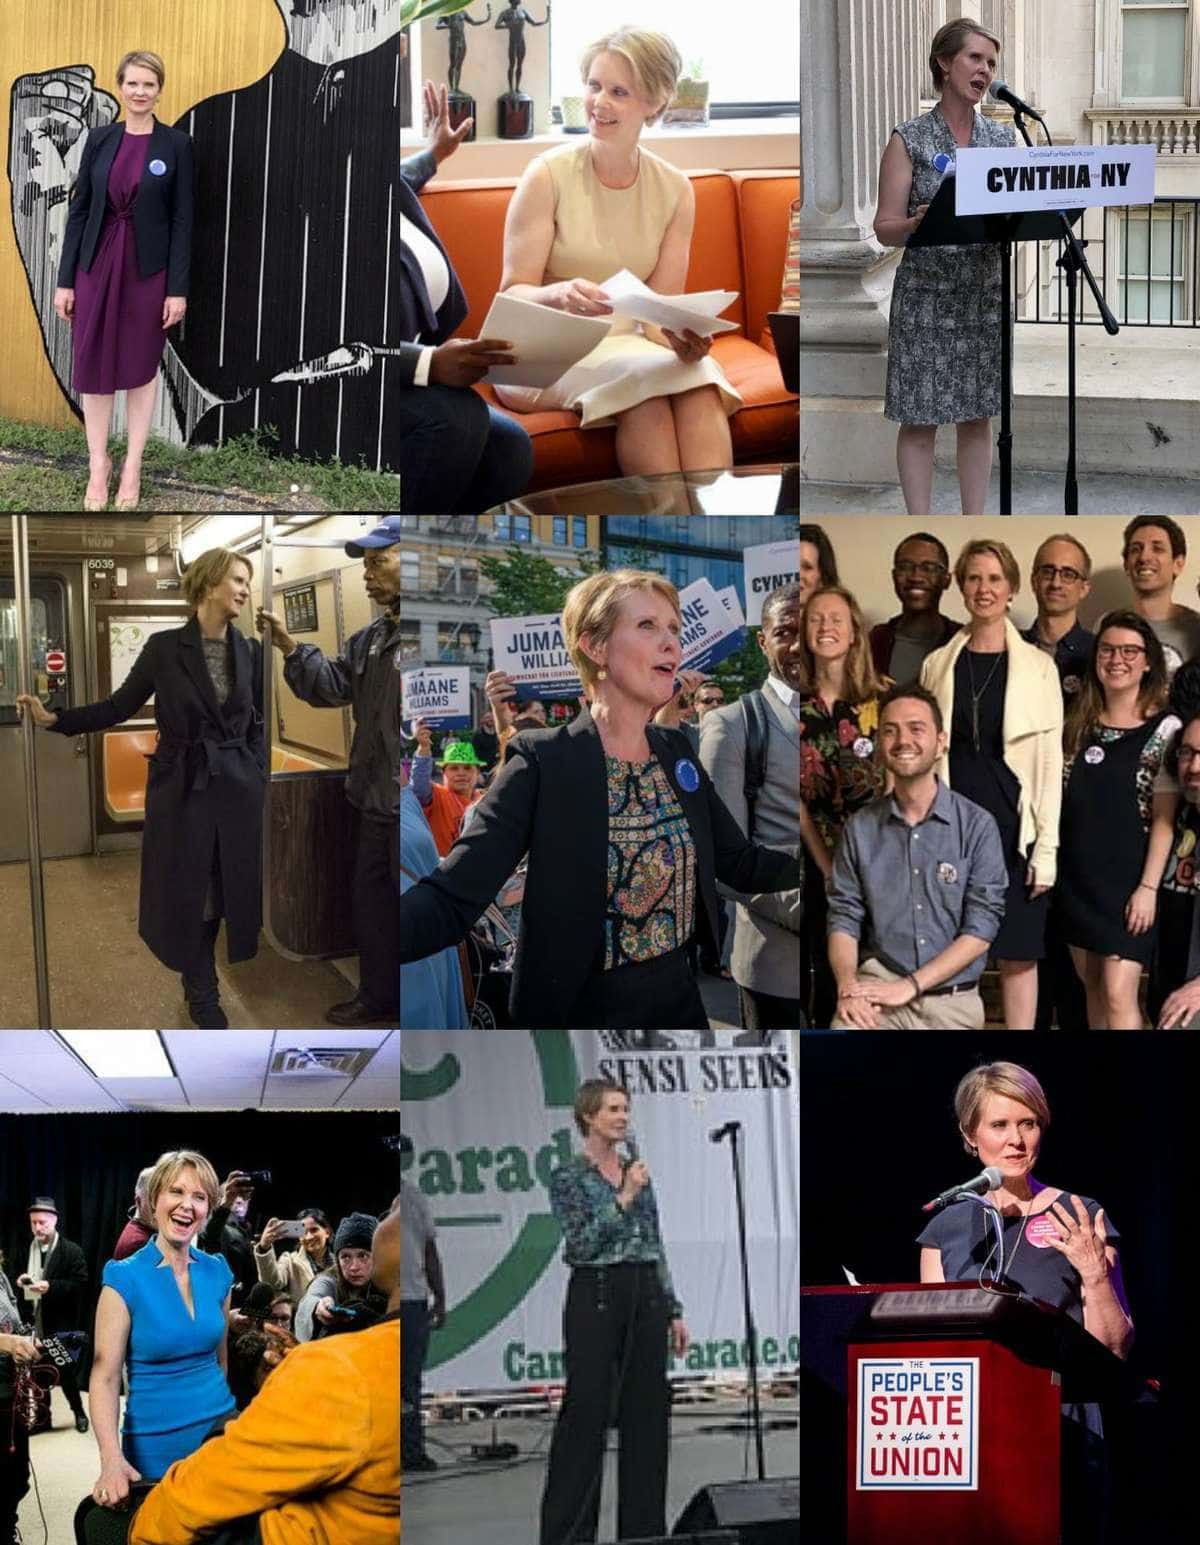 a collage of 12 photos of Cynthia Nixon on the campaign trail. She is wearing solid colors, sheath dresses, soft blazers with patterned blouses